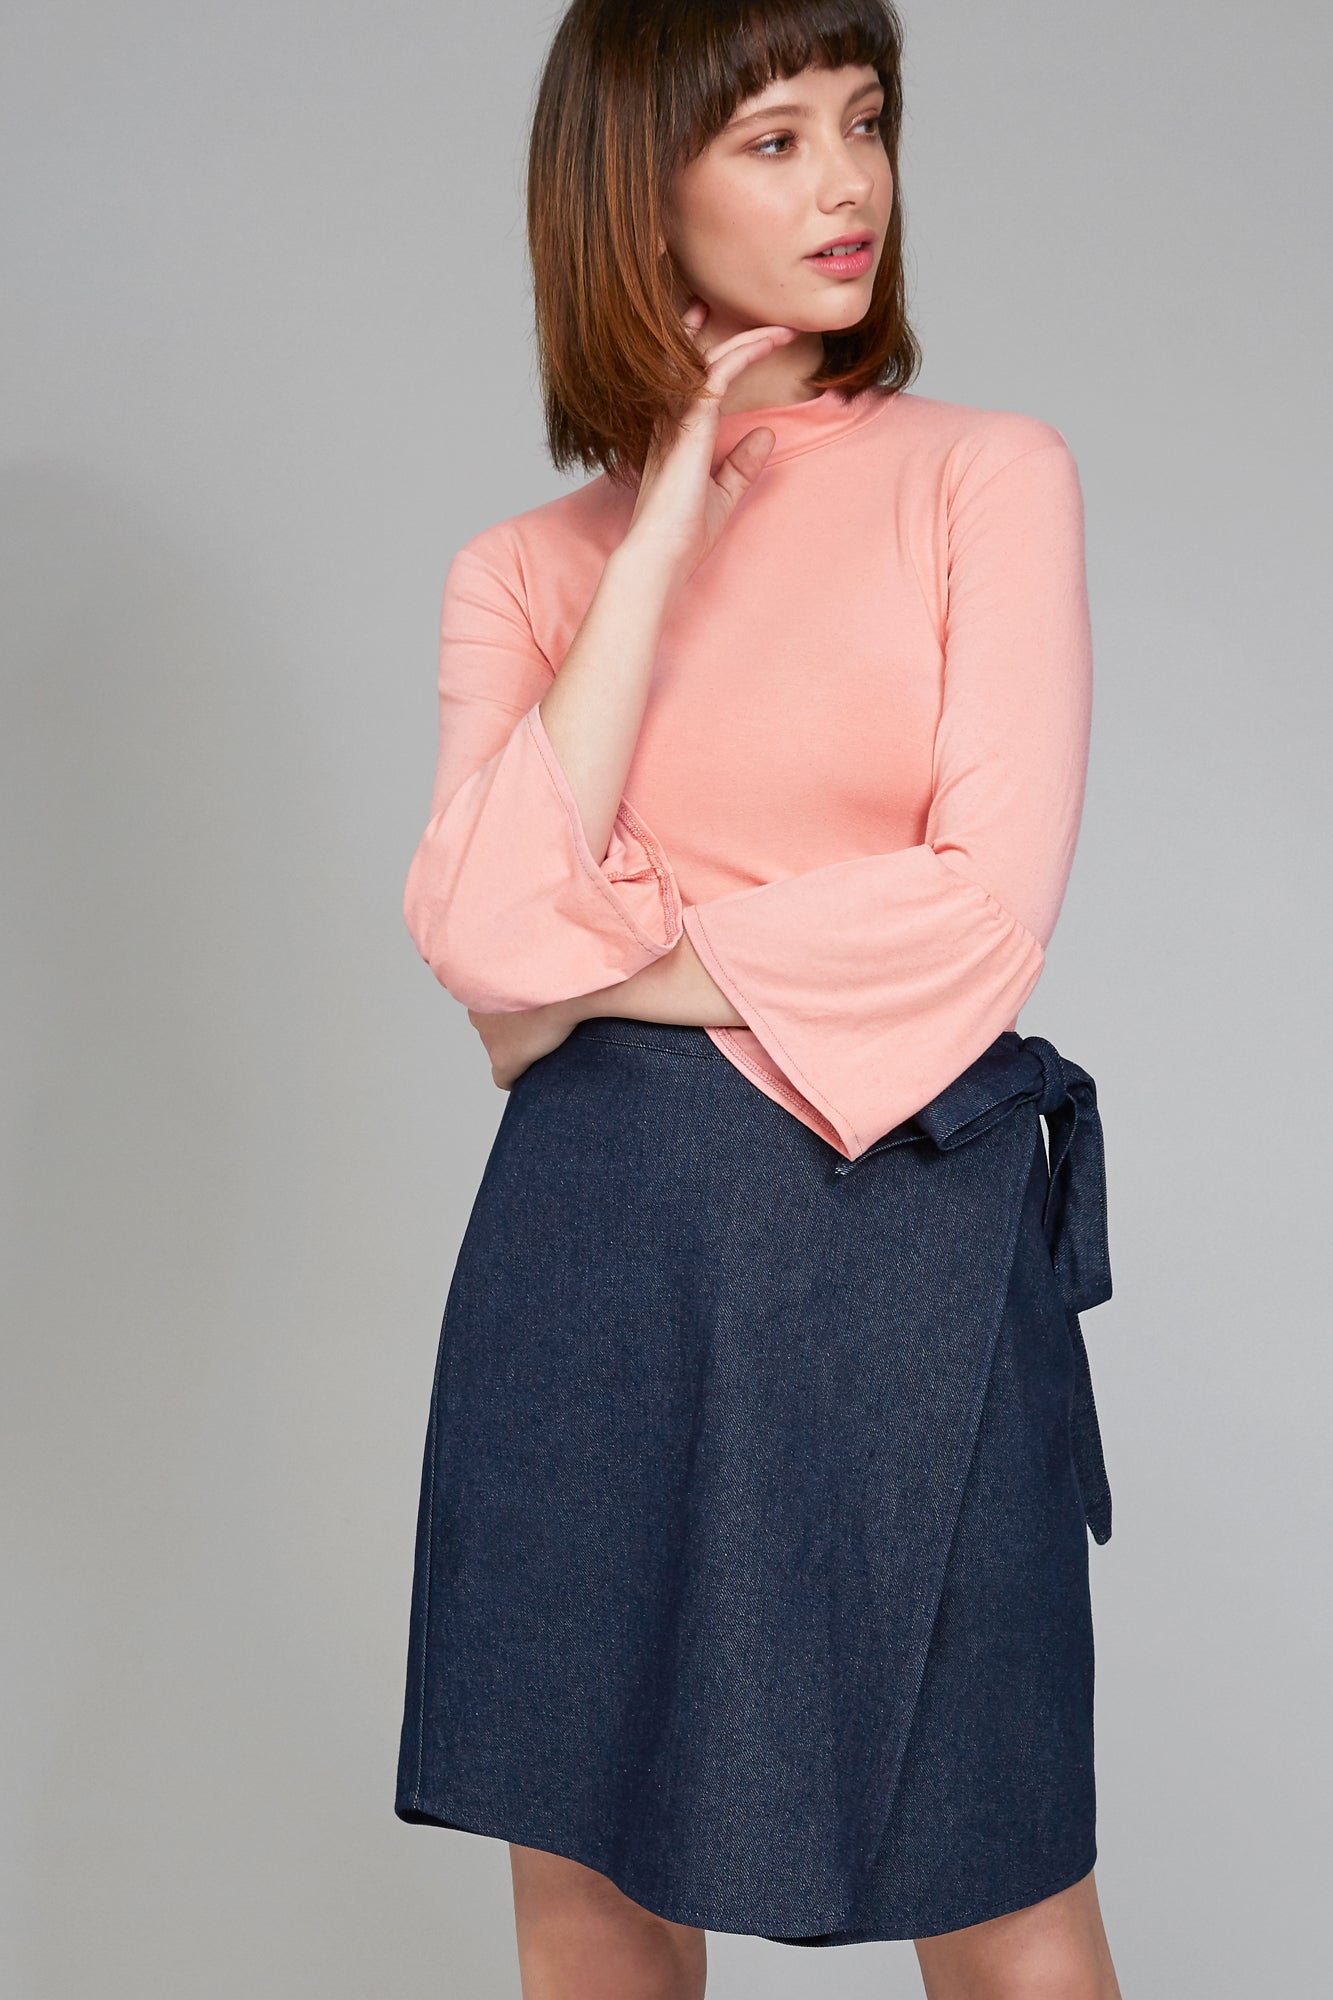 Sooji Denim Skirt - Ricepaperthelabel